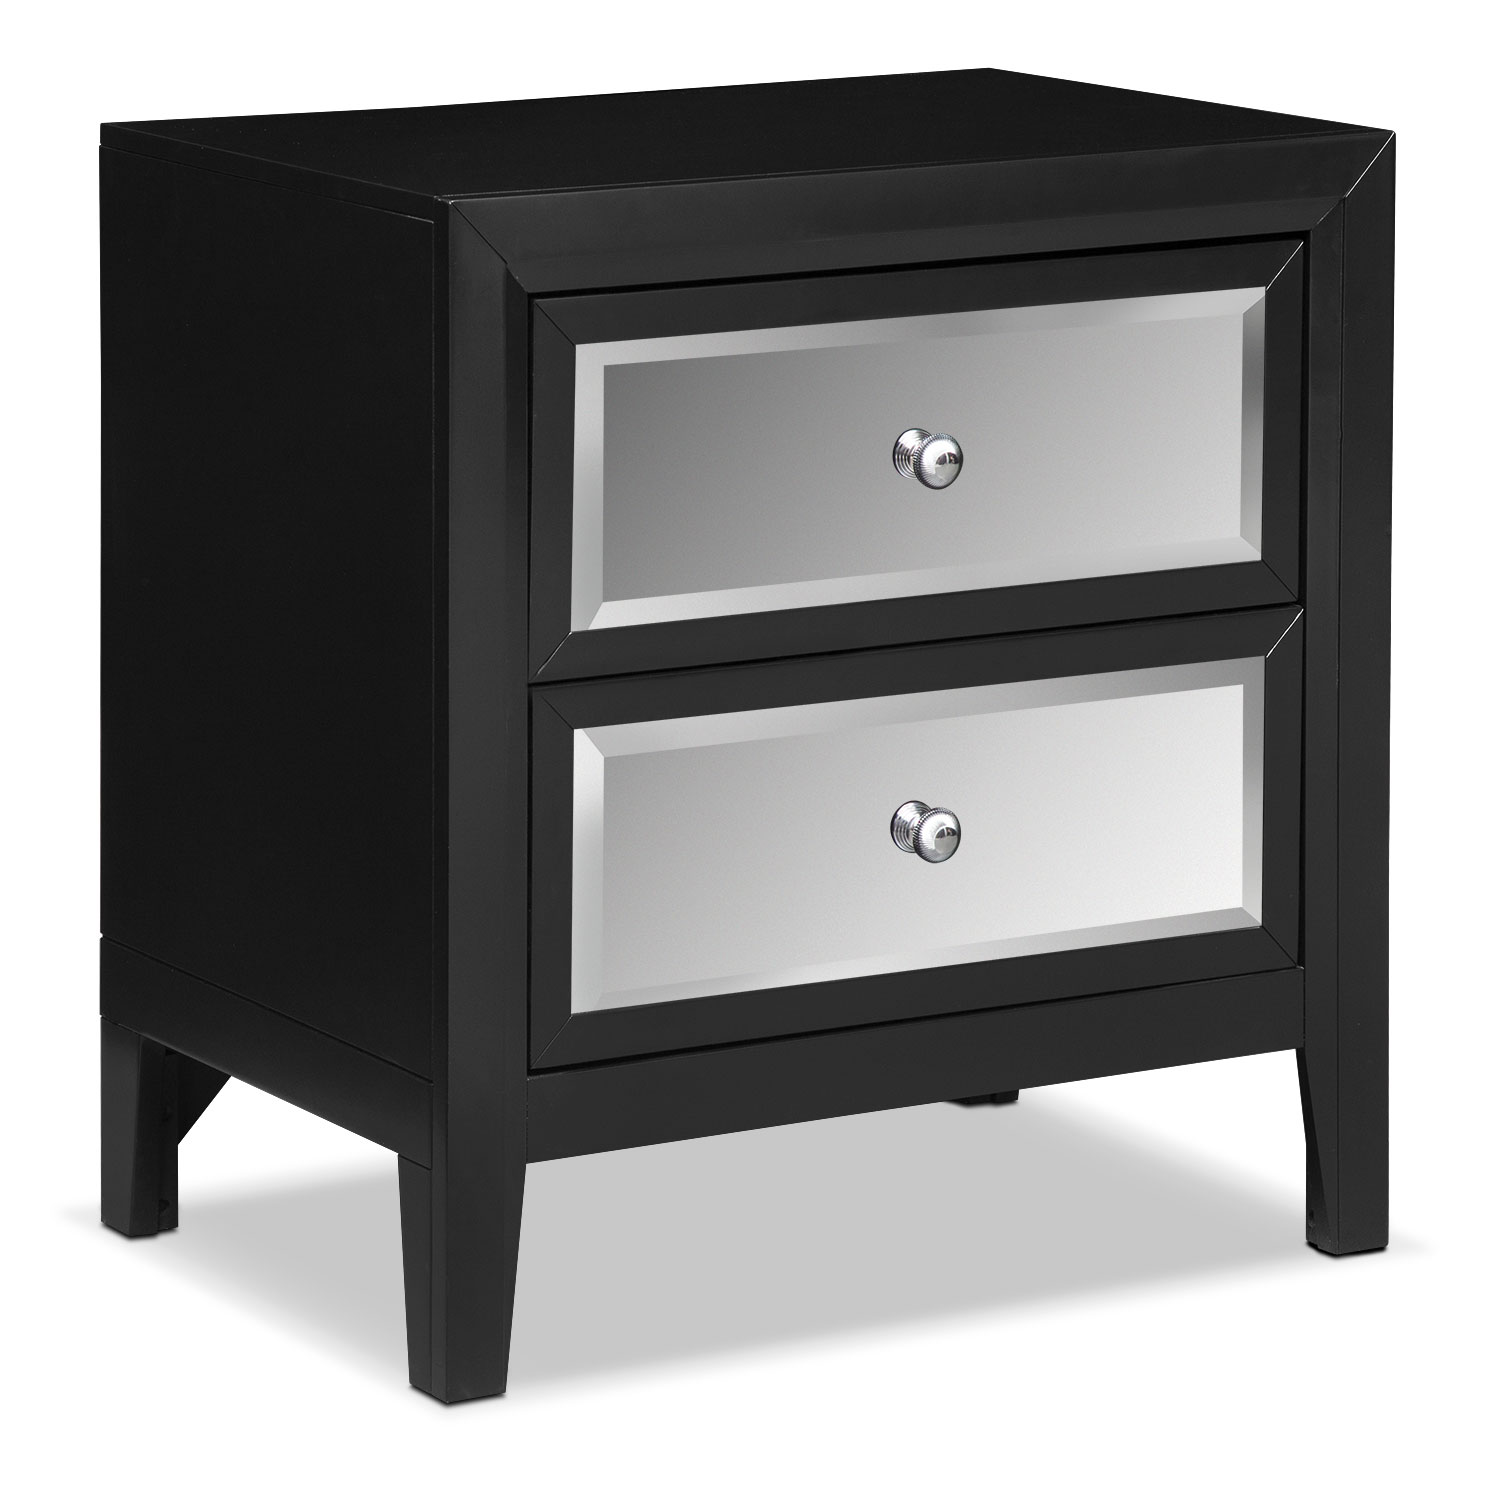 #525157 Bonita Nightstand Black Value City Furniture with 1500x1500 px of Most Effective Black Nightstand And Dresser 15001500 wallpaper @ avoidforclosure.info